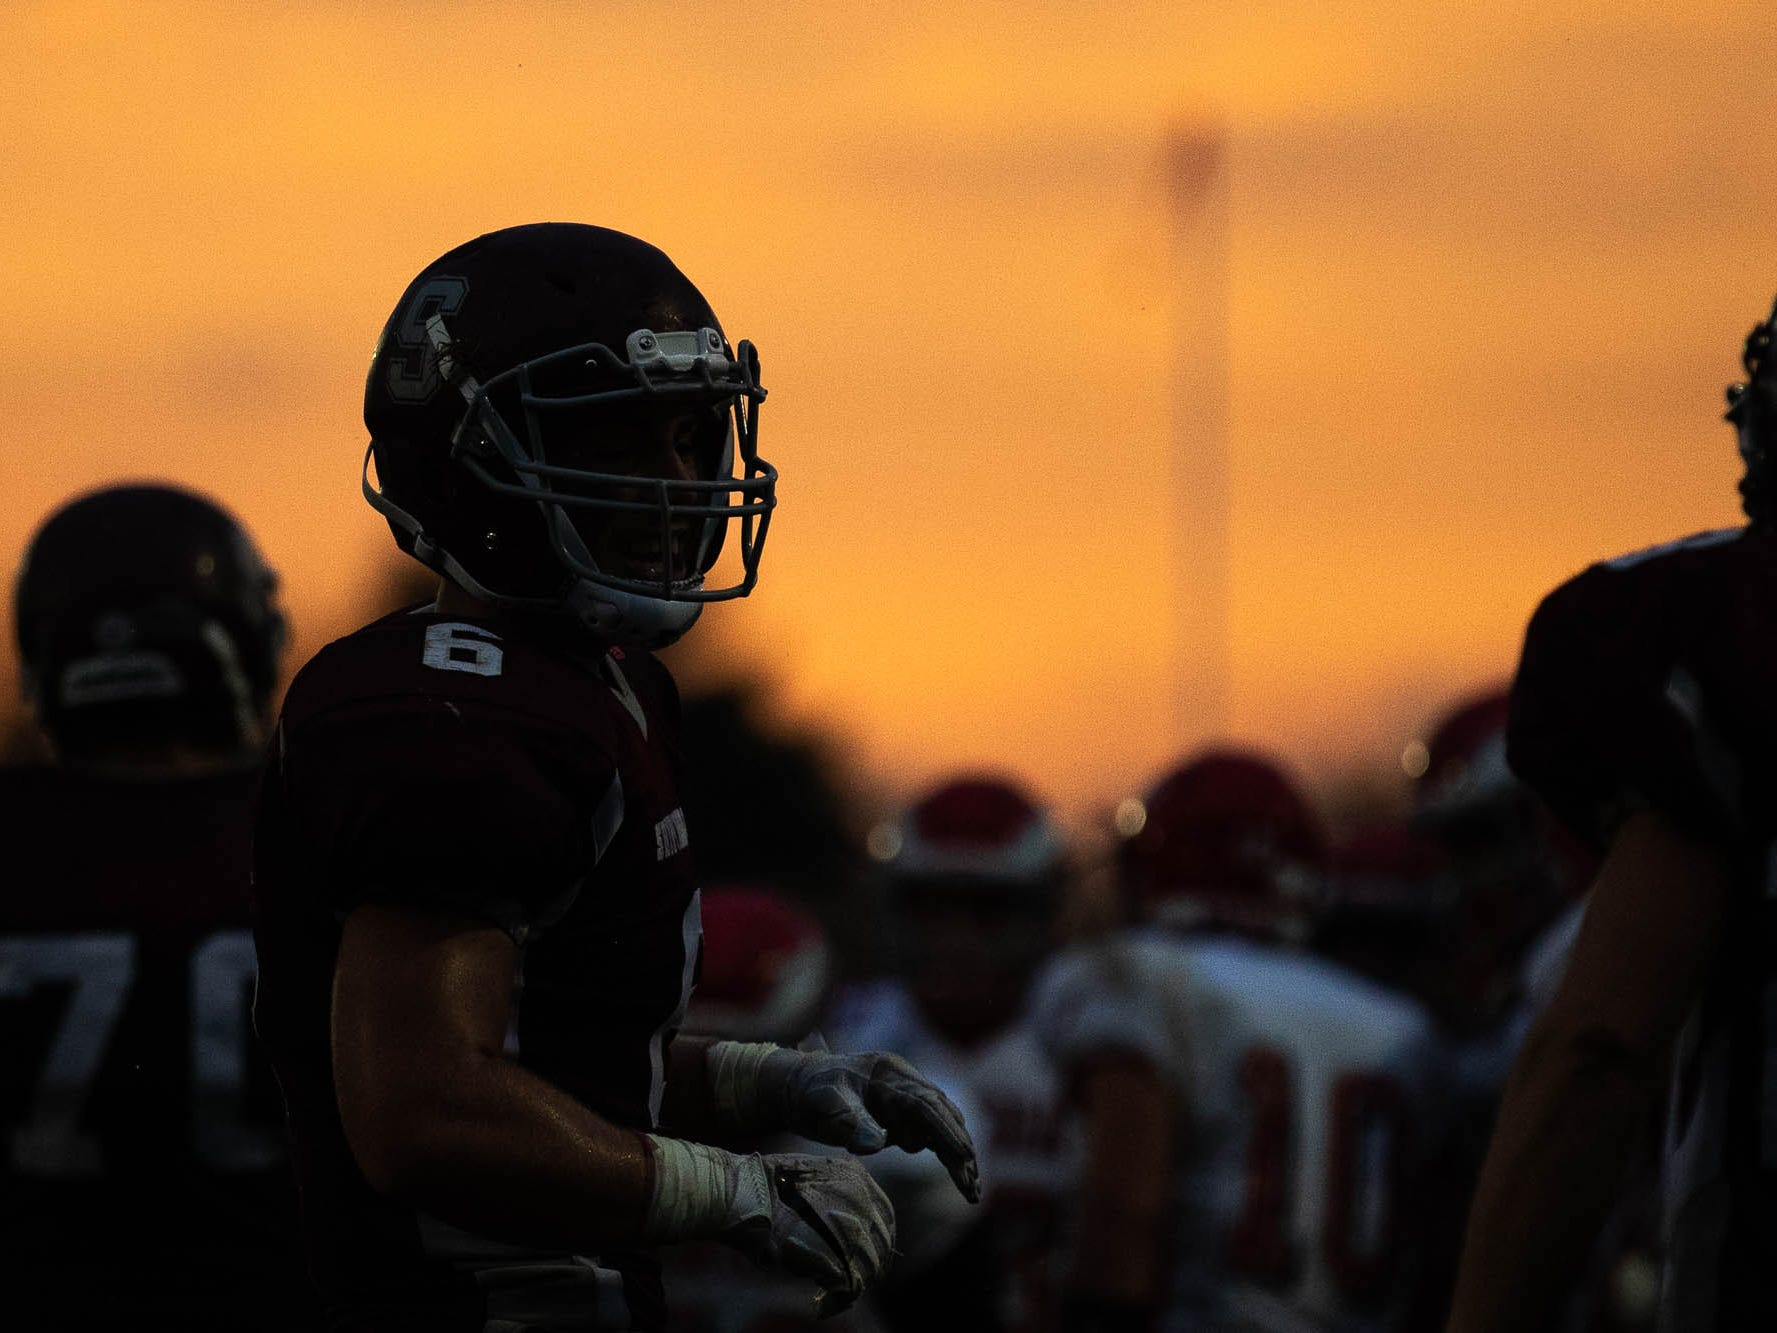 Shippensburg's Jacob Loy (6) readies for a defensive play during a football game between Shippensburg and Bermudian Springs, Friday, Sept. 7, 2018, at Shippensburg High School.